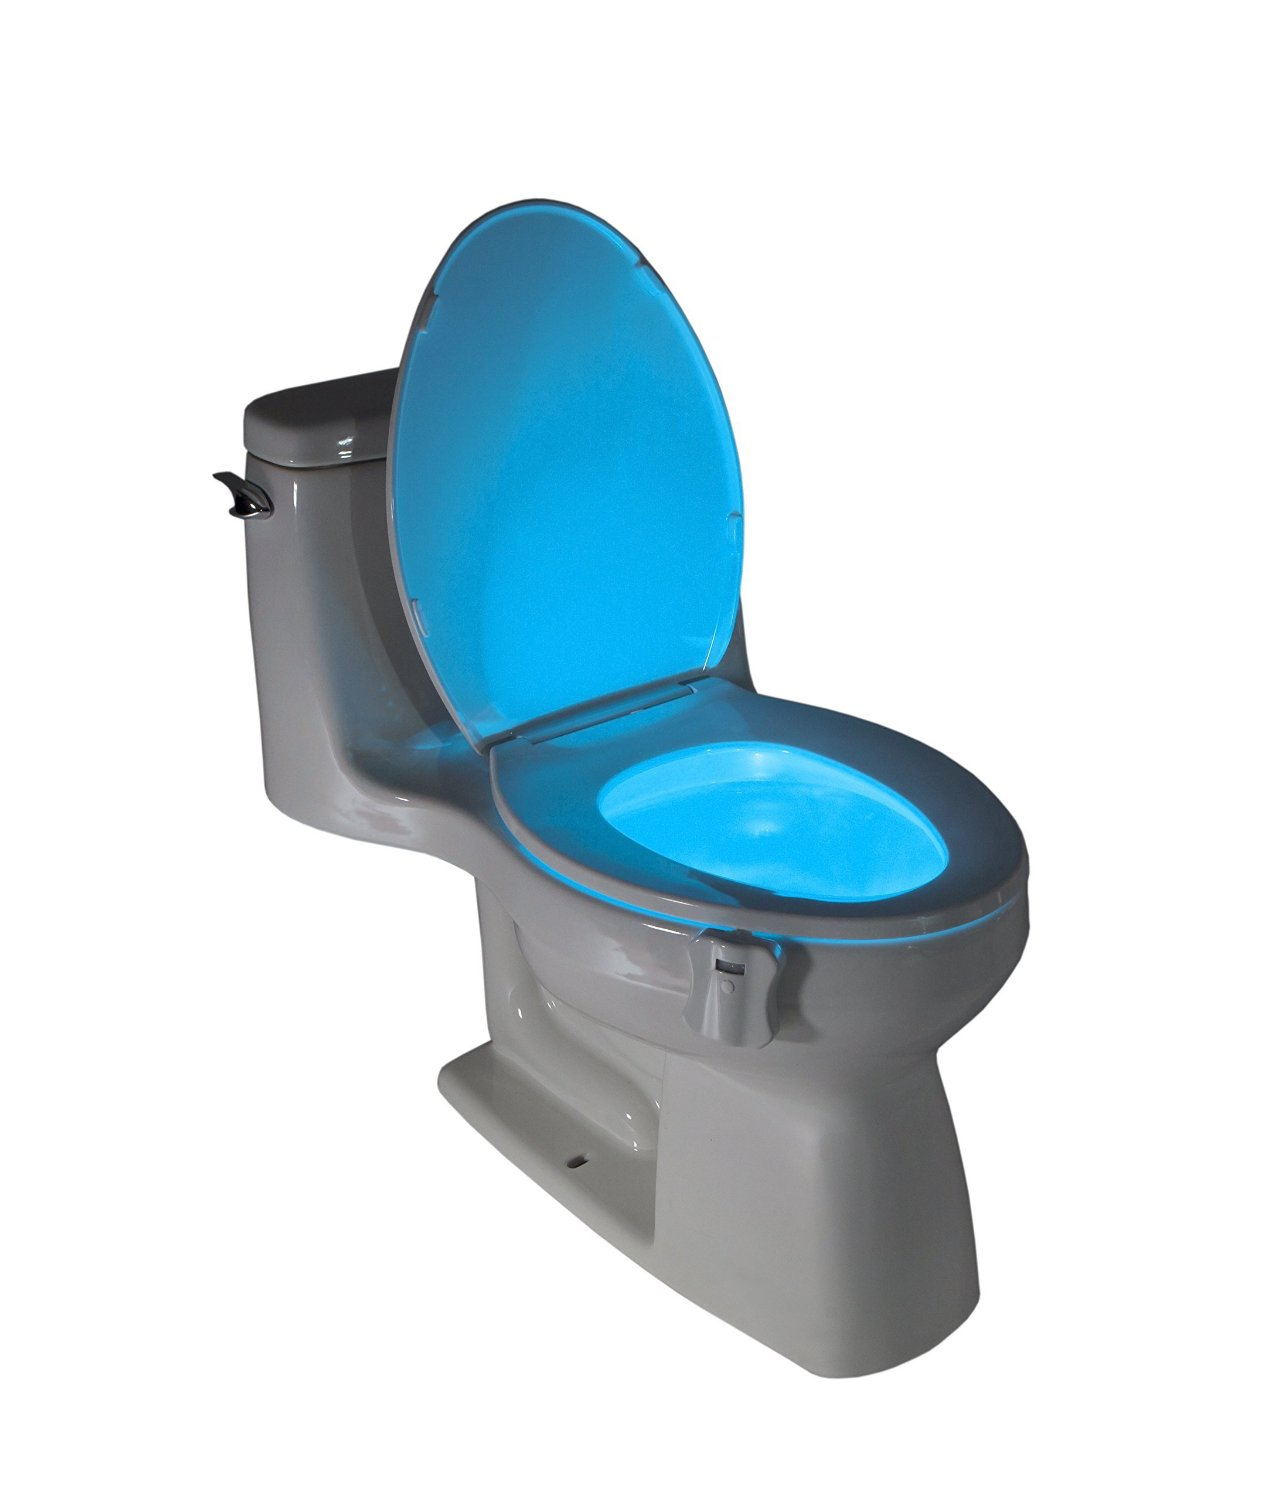 Best toilet on the market reviews - Blowbowl Toilet Light